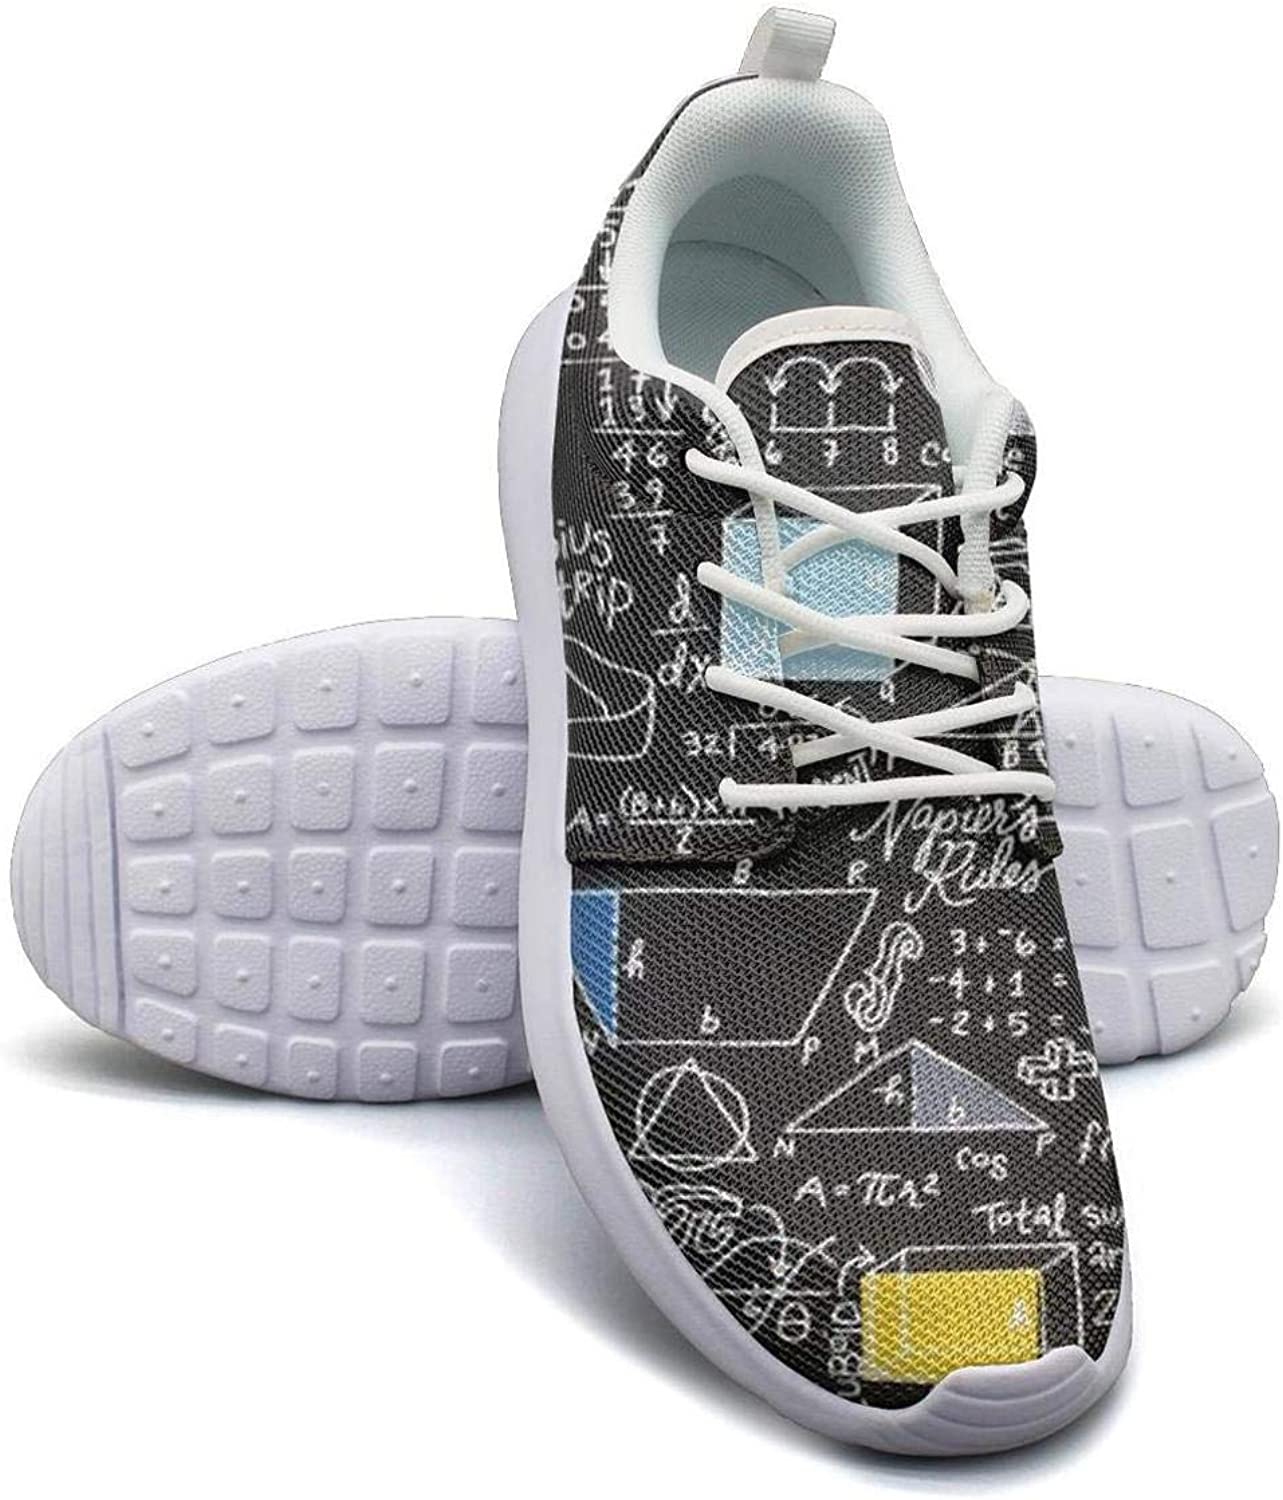 Dhaskhdkl Back to School Math Formula Black Backdrop Girl Canvas Casual shoes Sneakers Low Help Classic Running shoes